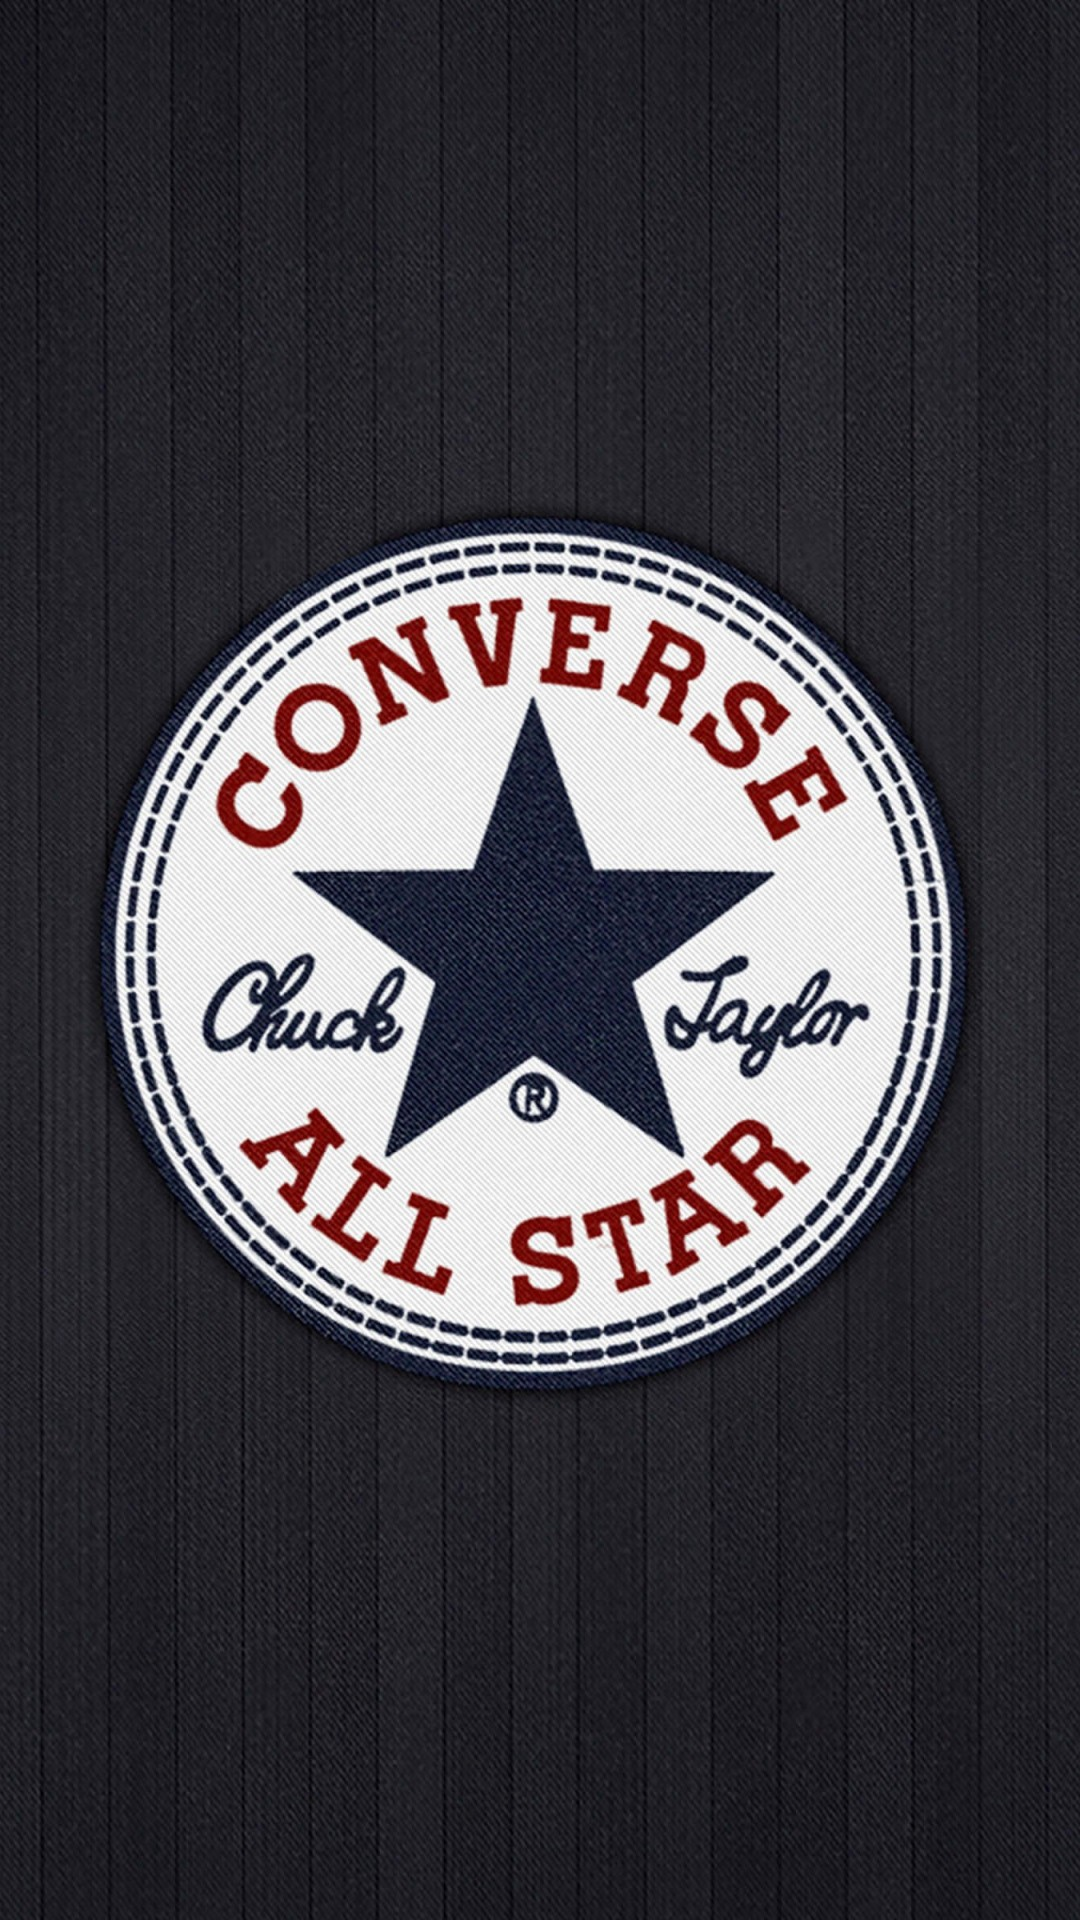 Converse All Star Wallpaper for LG G2